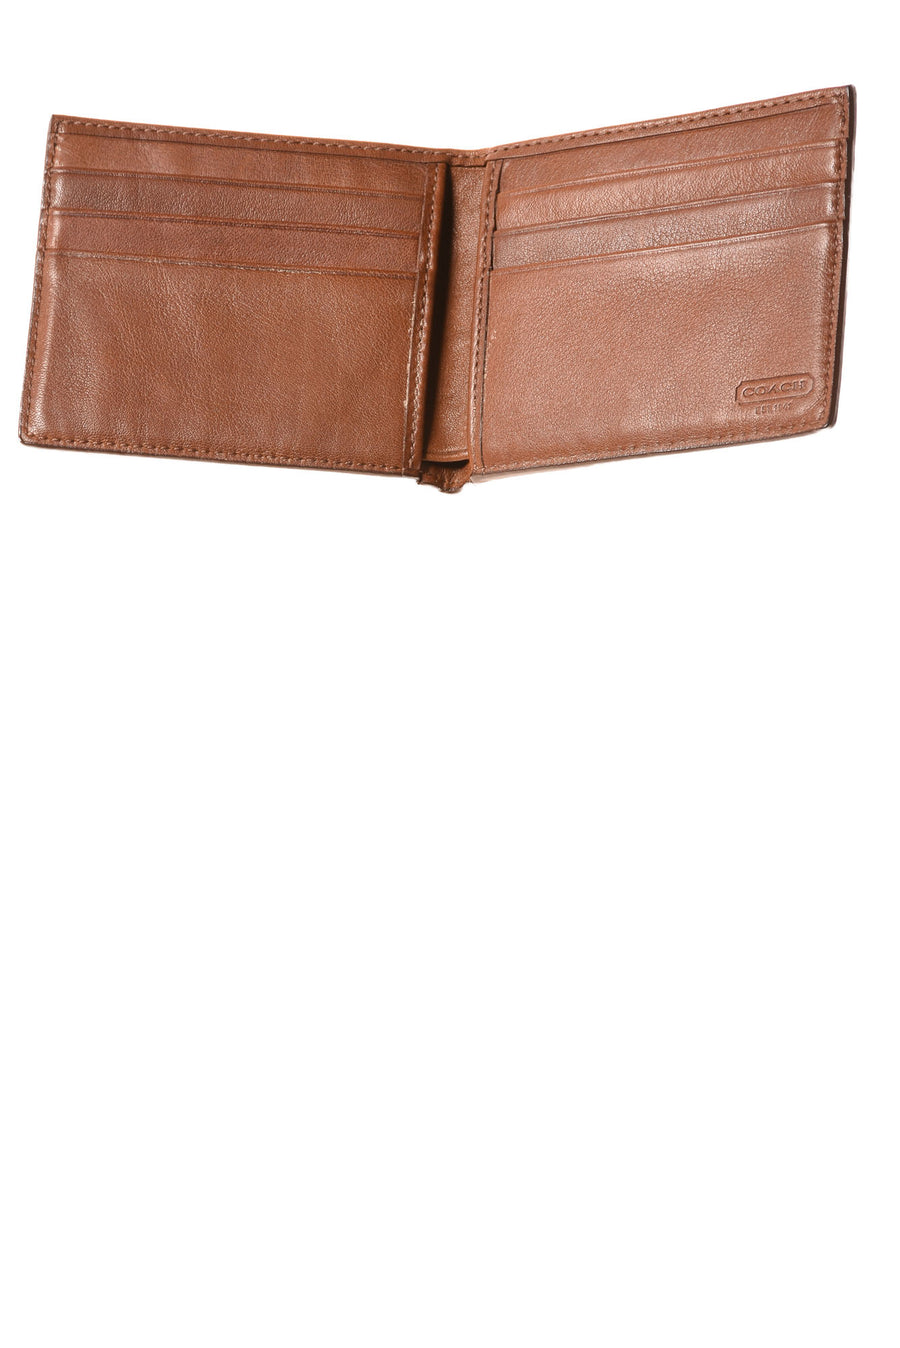 Men's Wallet By No Brand